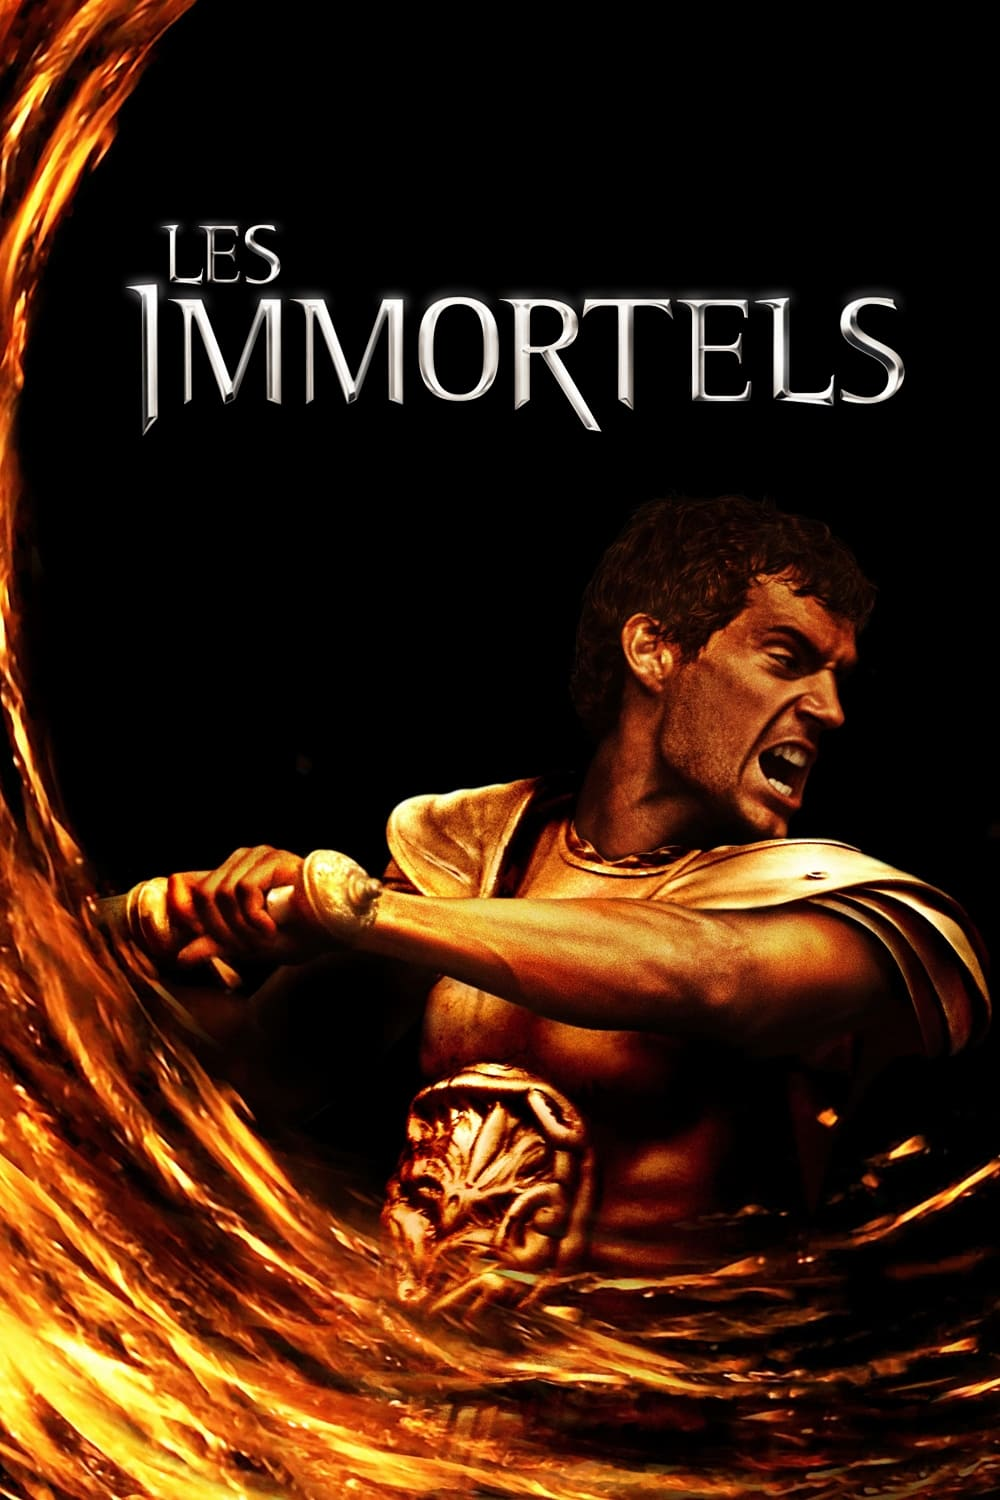 Les immortels streaming sur libertyvf